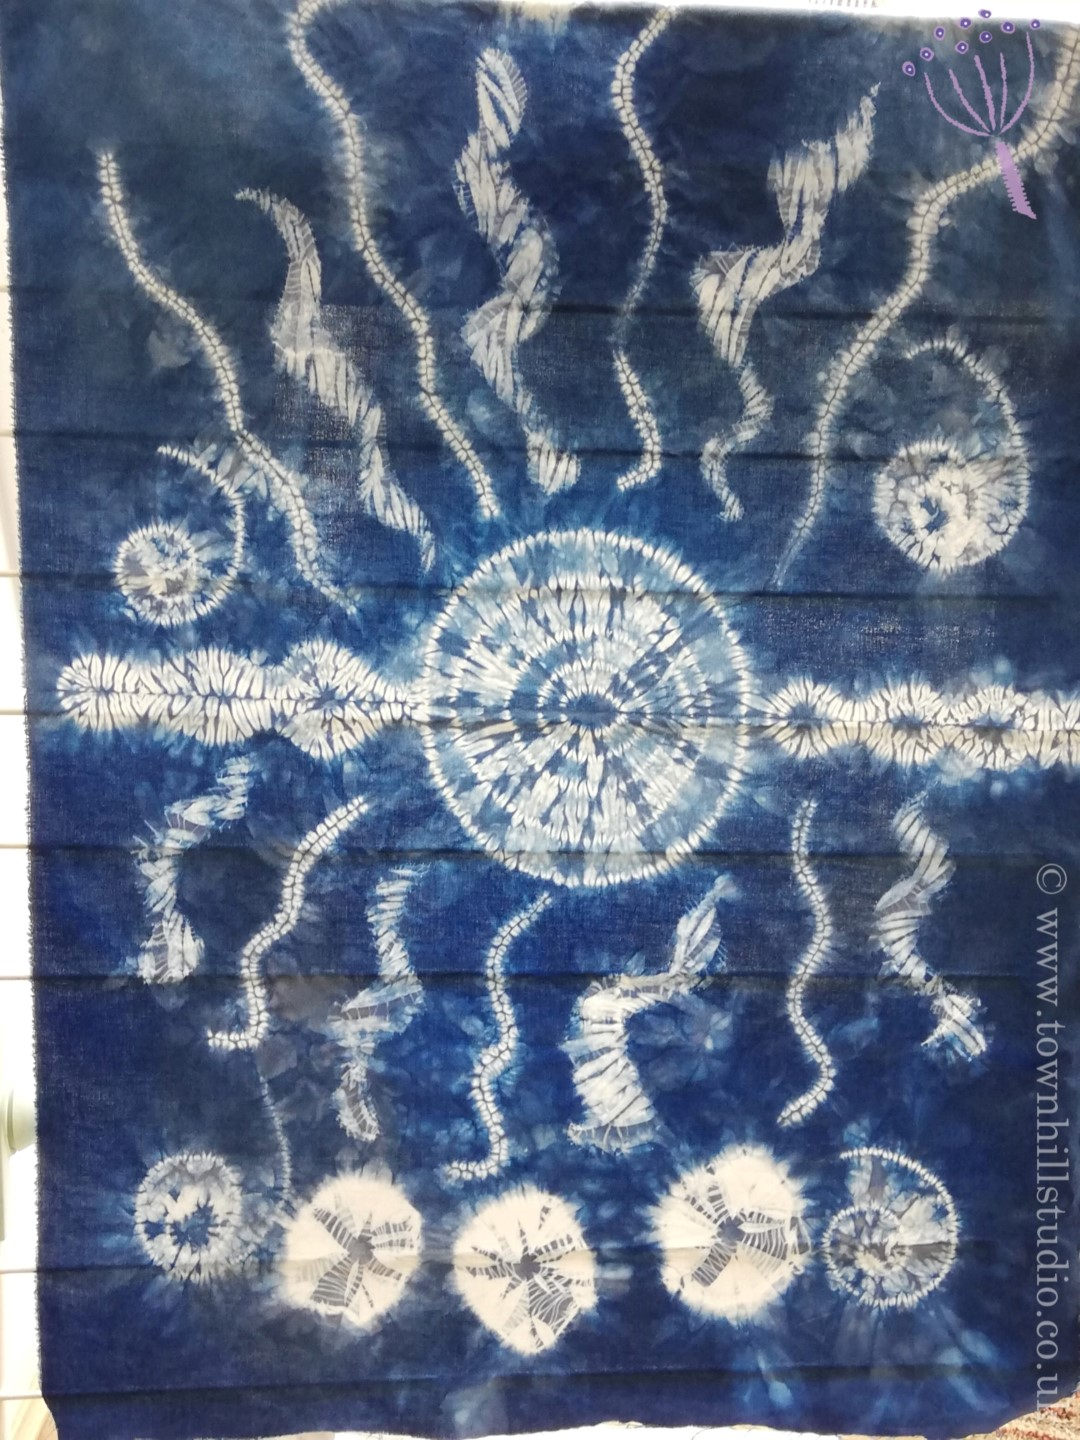 shibori stitch resist pattern